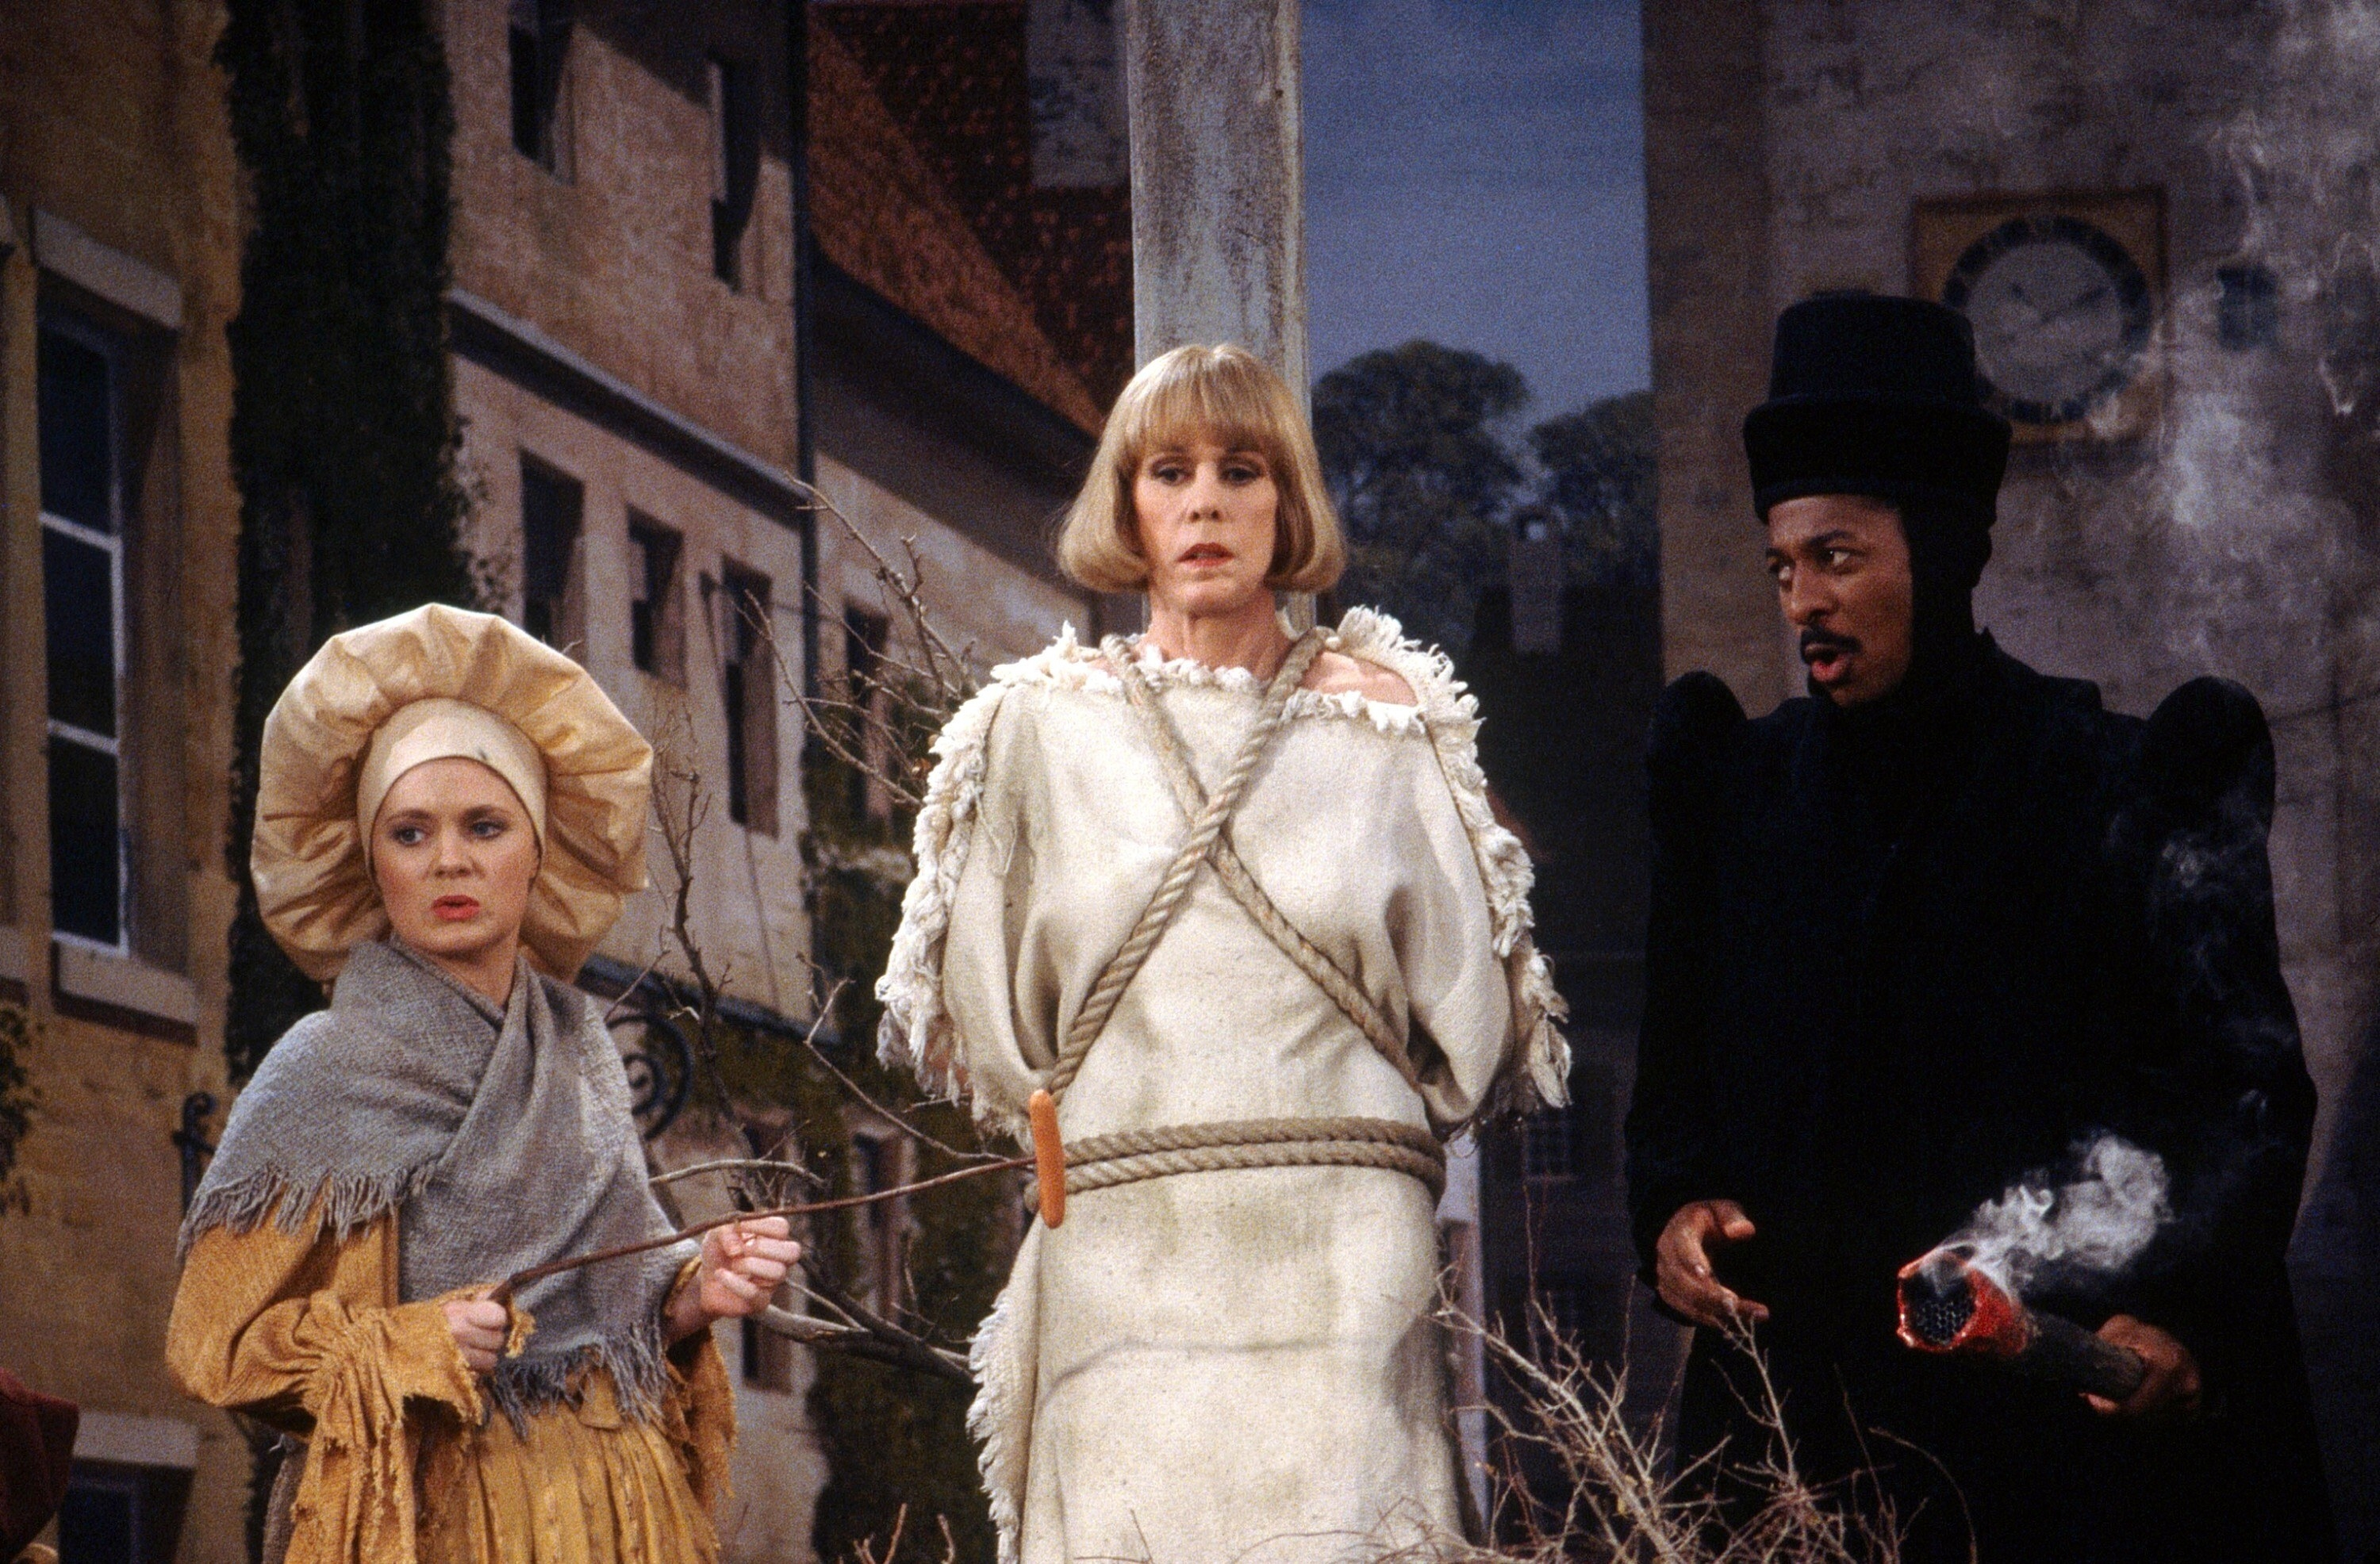 Meagen Fay, Carol Burnett, and Robert Townsend perform a burning at the stake sketch